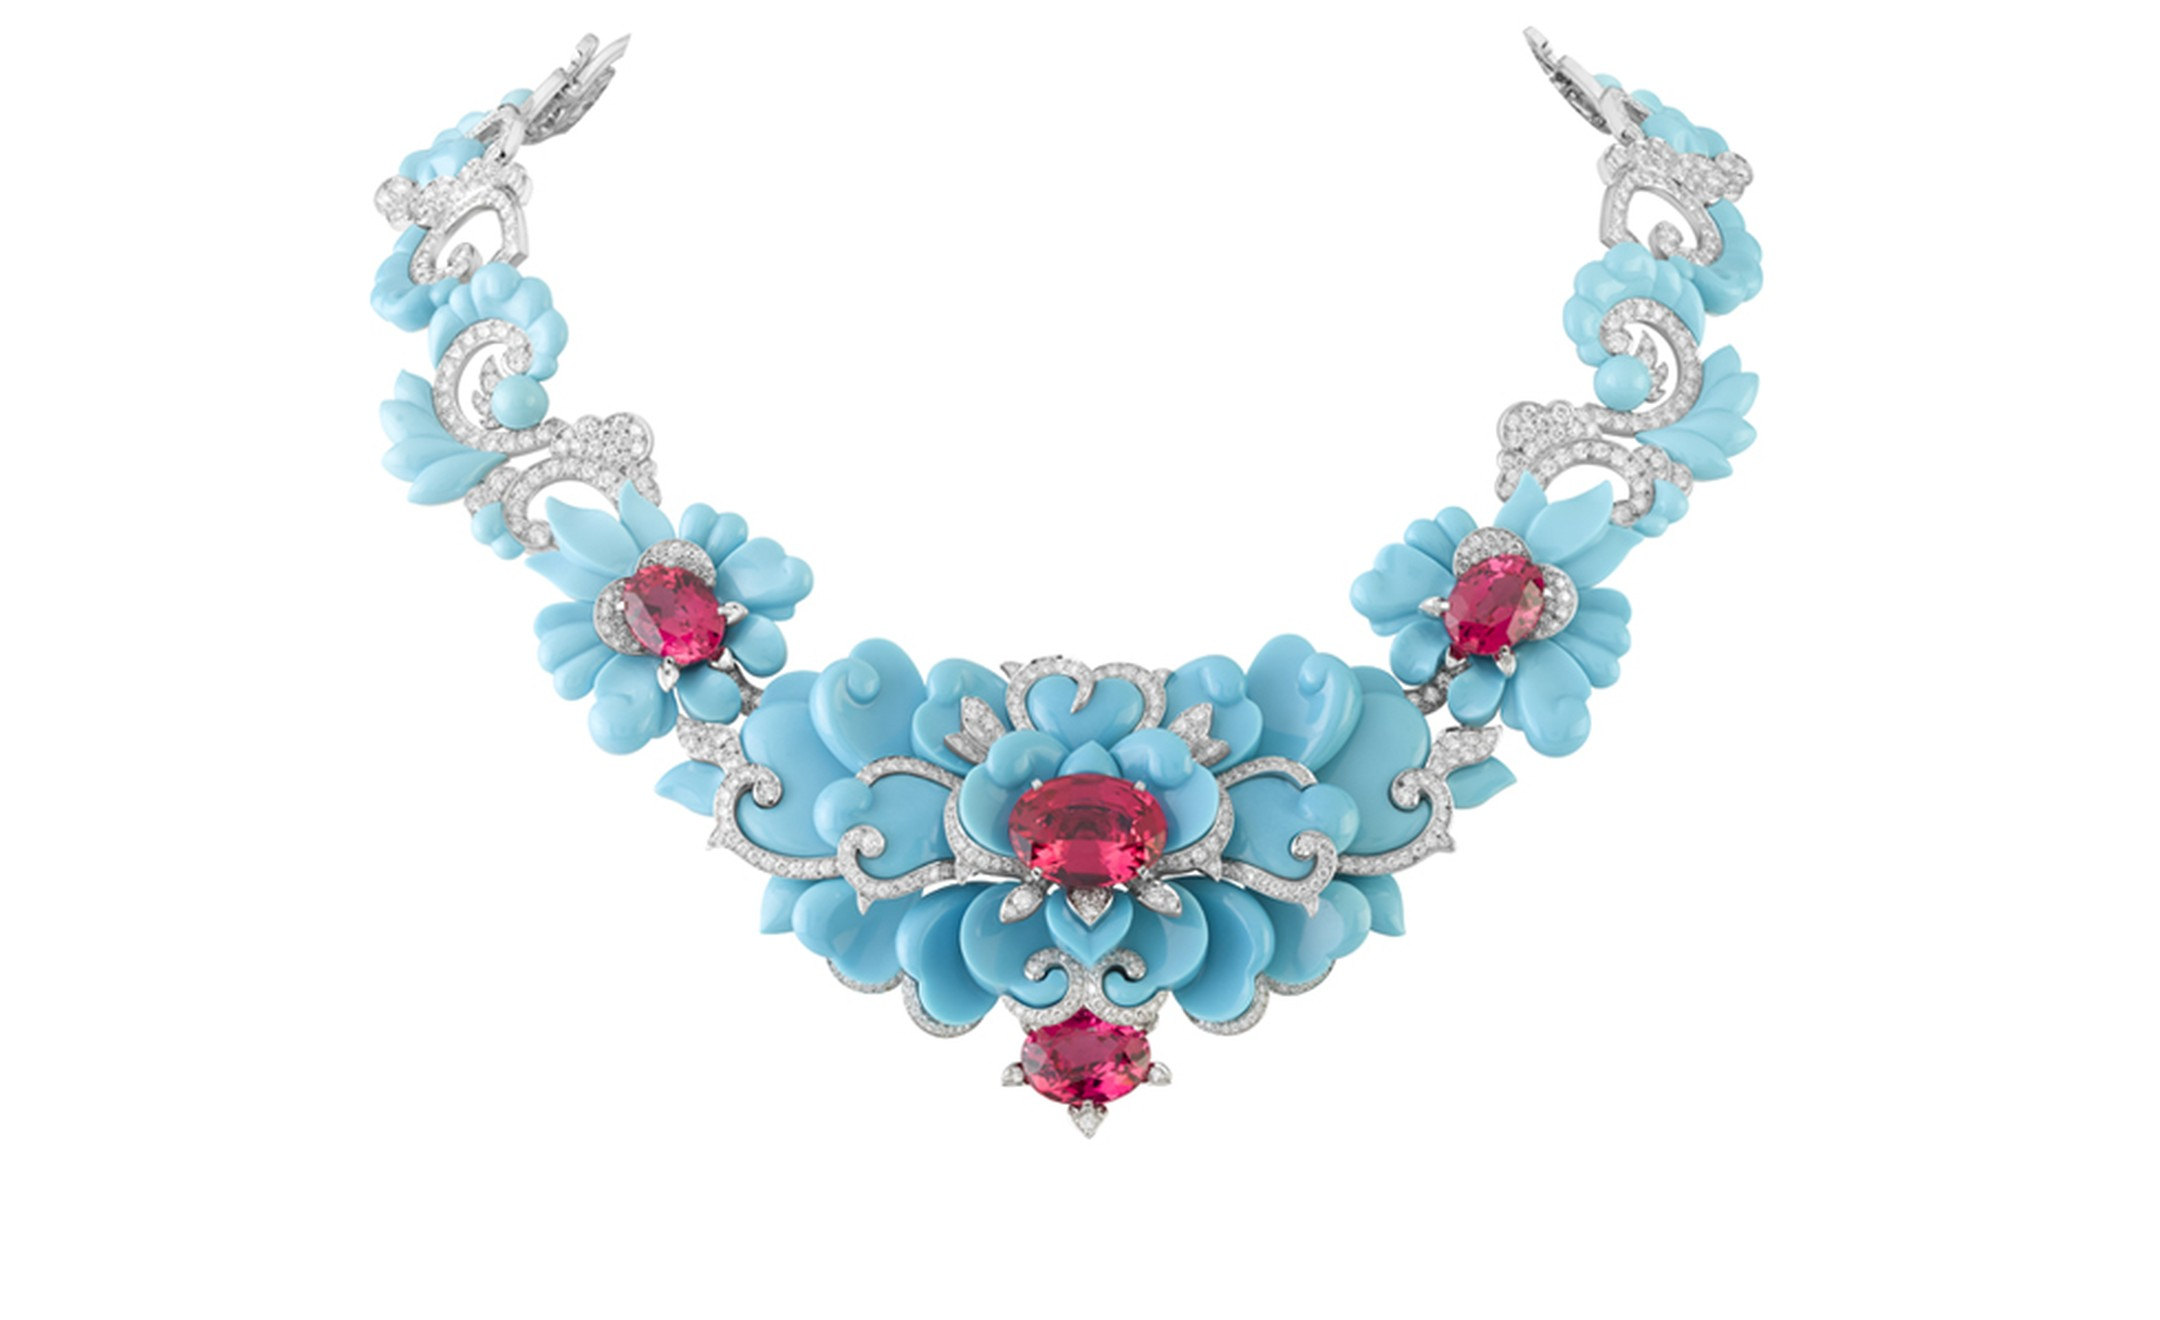 Van Cleef & Arpels, Bals de Légende, Le Bal Oriental, Kingfisher necklace.